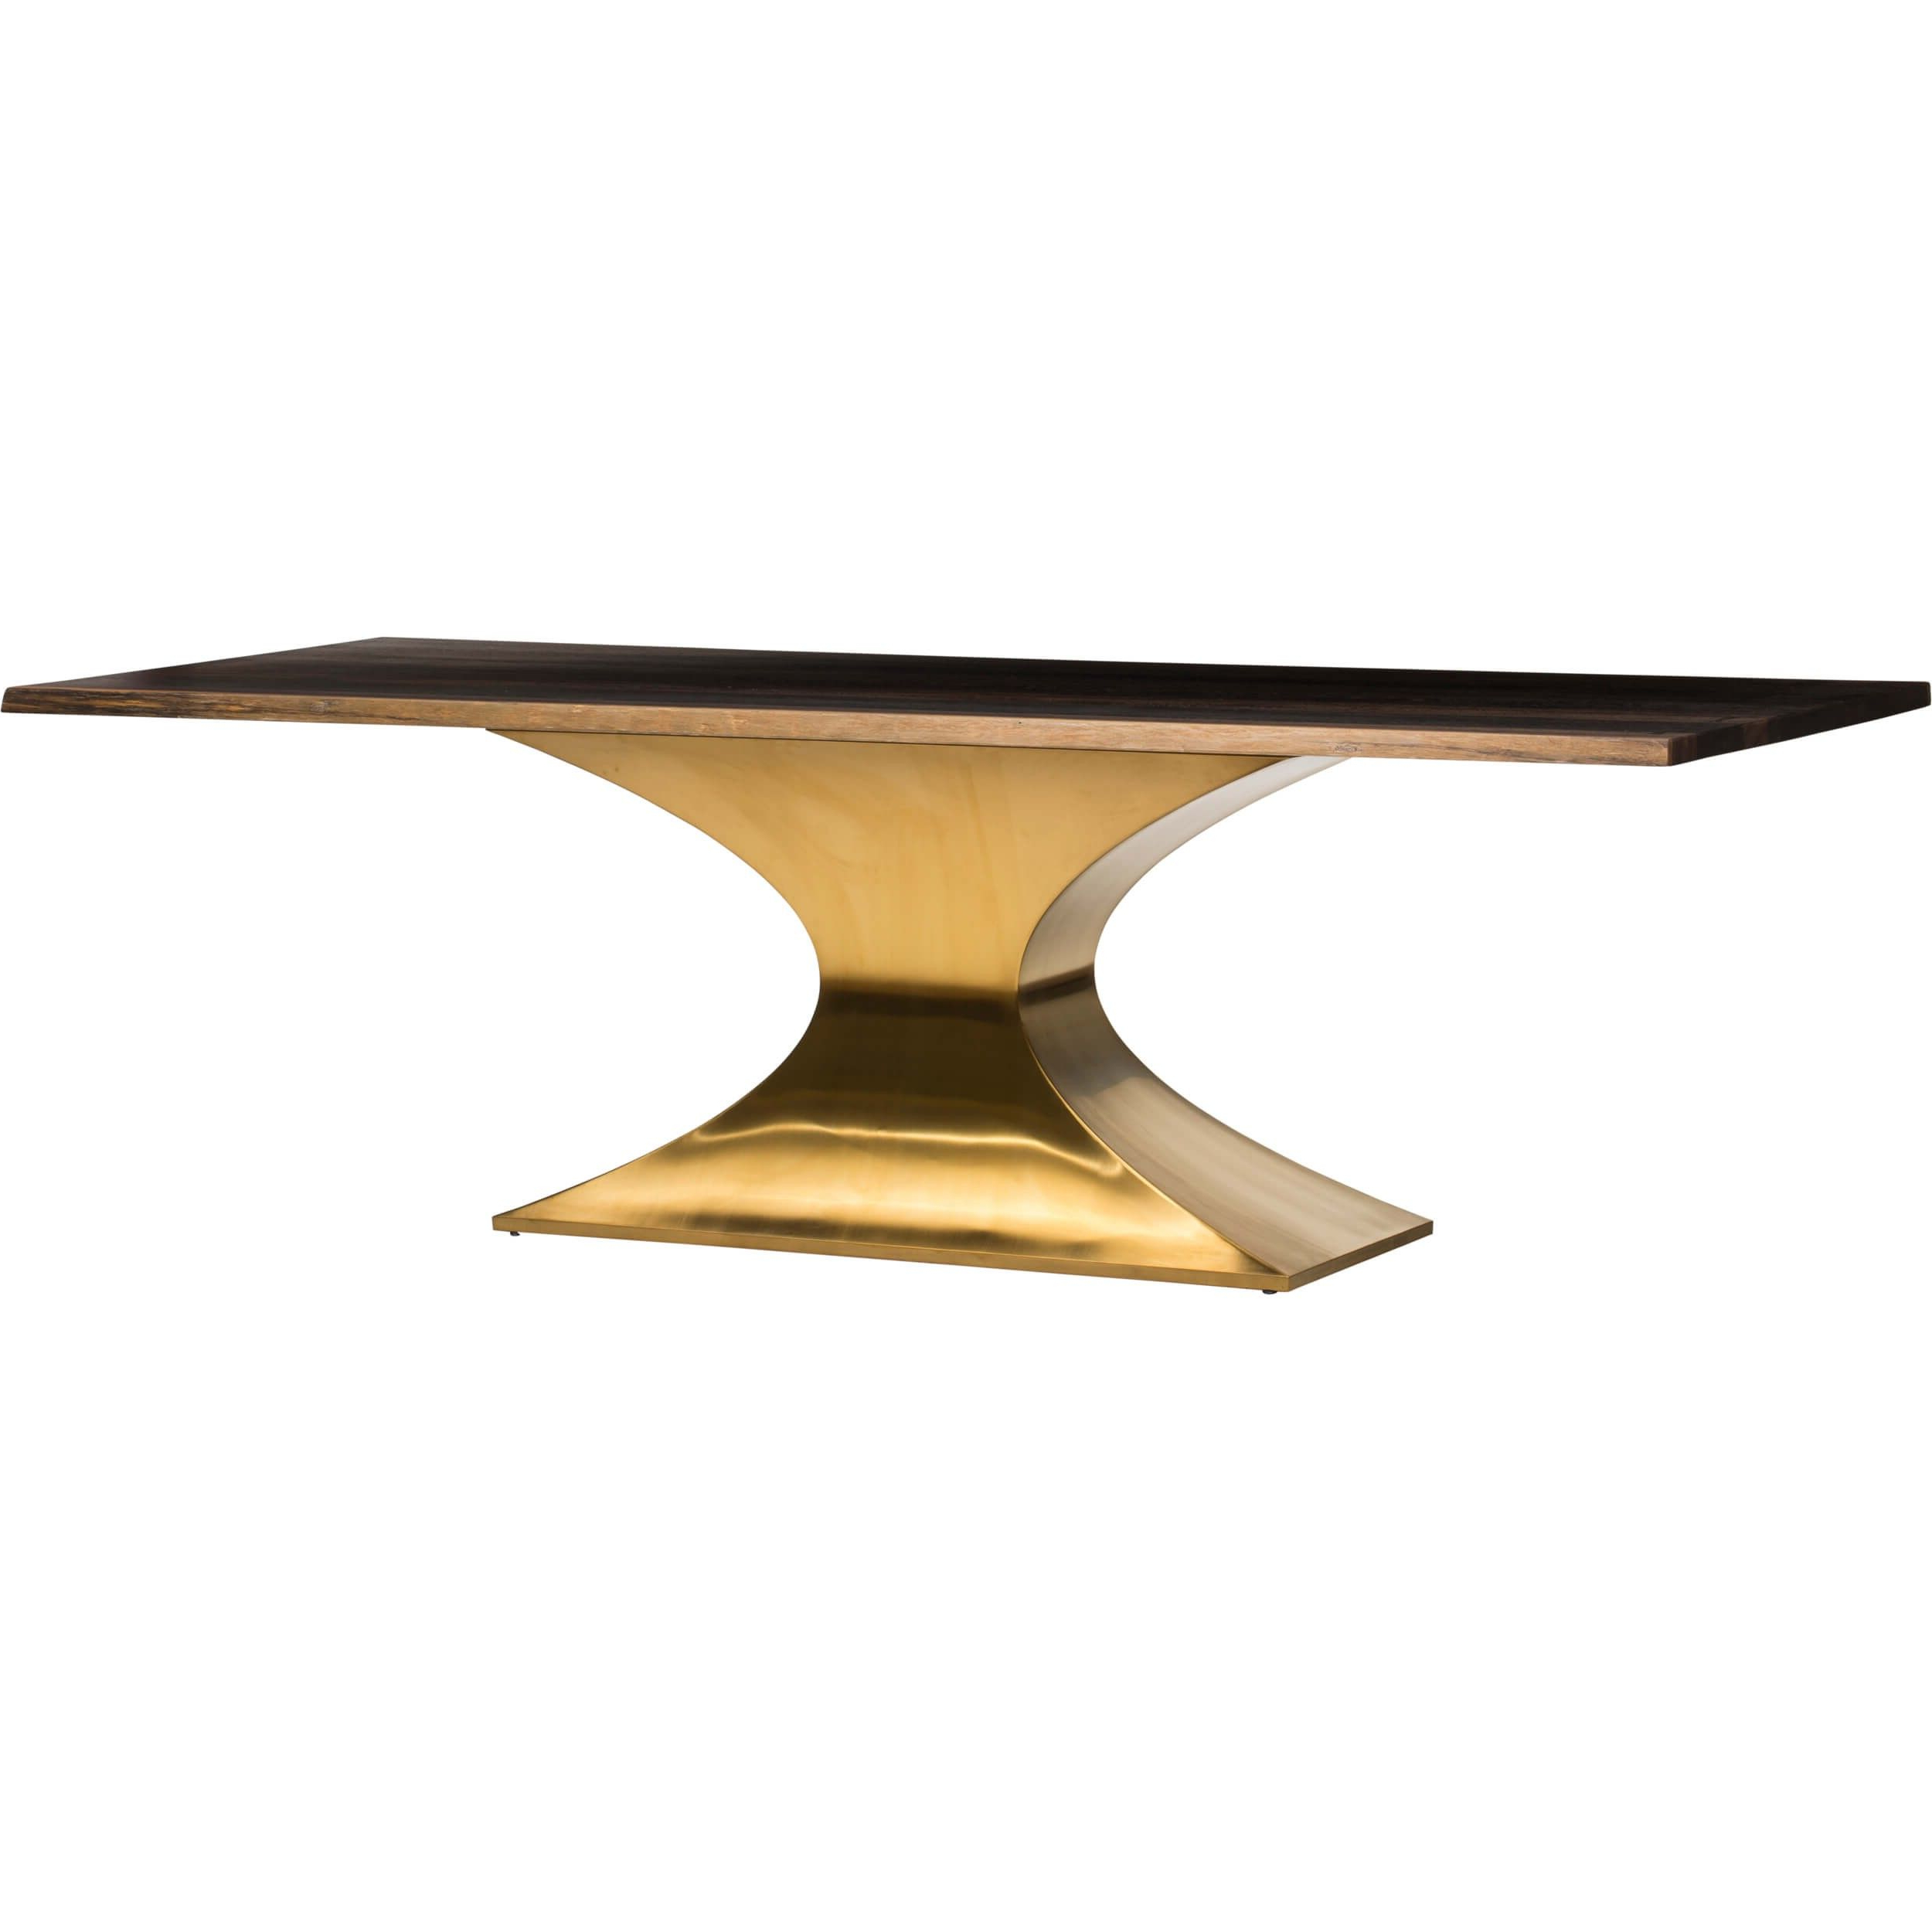 Latest Dining Tables In Seared Oak With Brass Detail Pertaining To Praetorian Dining Table, Seared Oak/brushed Gold Base (View 11 of 30)